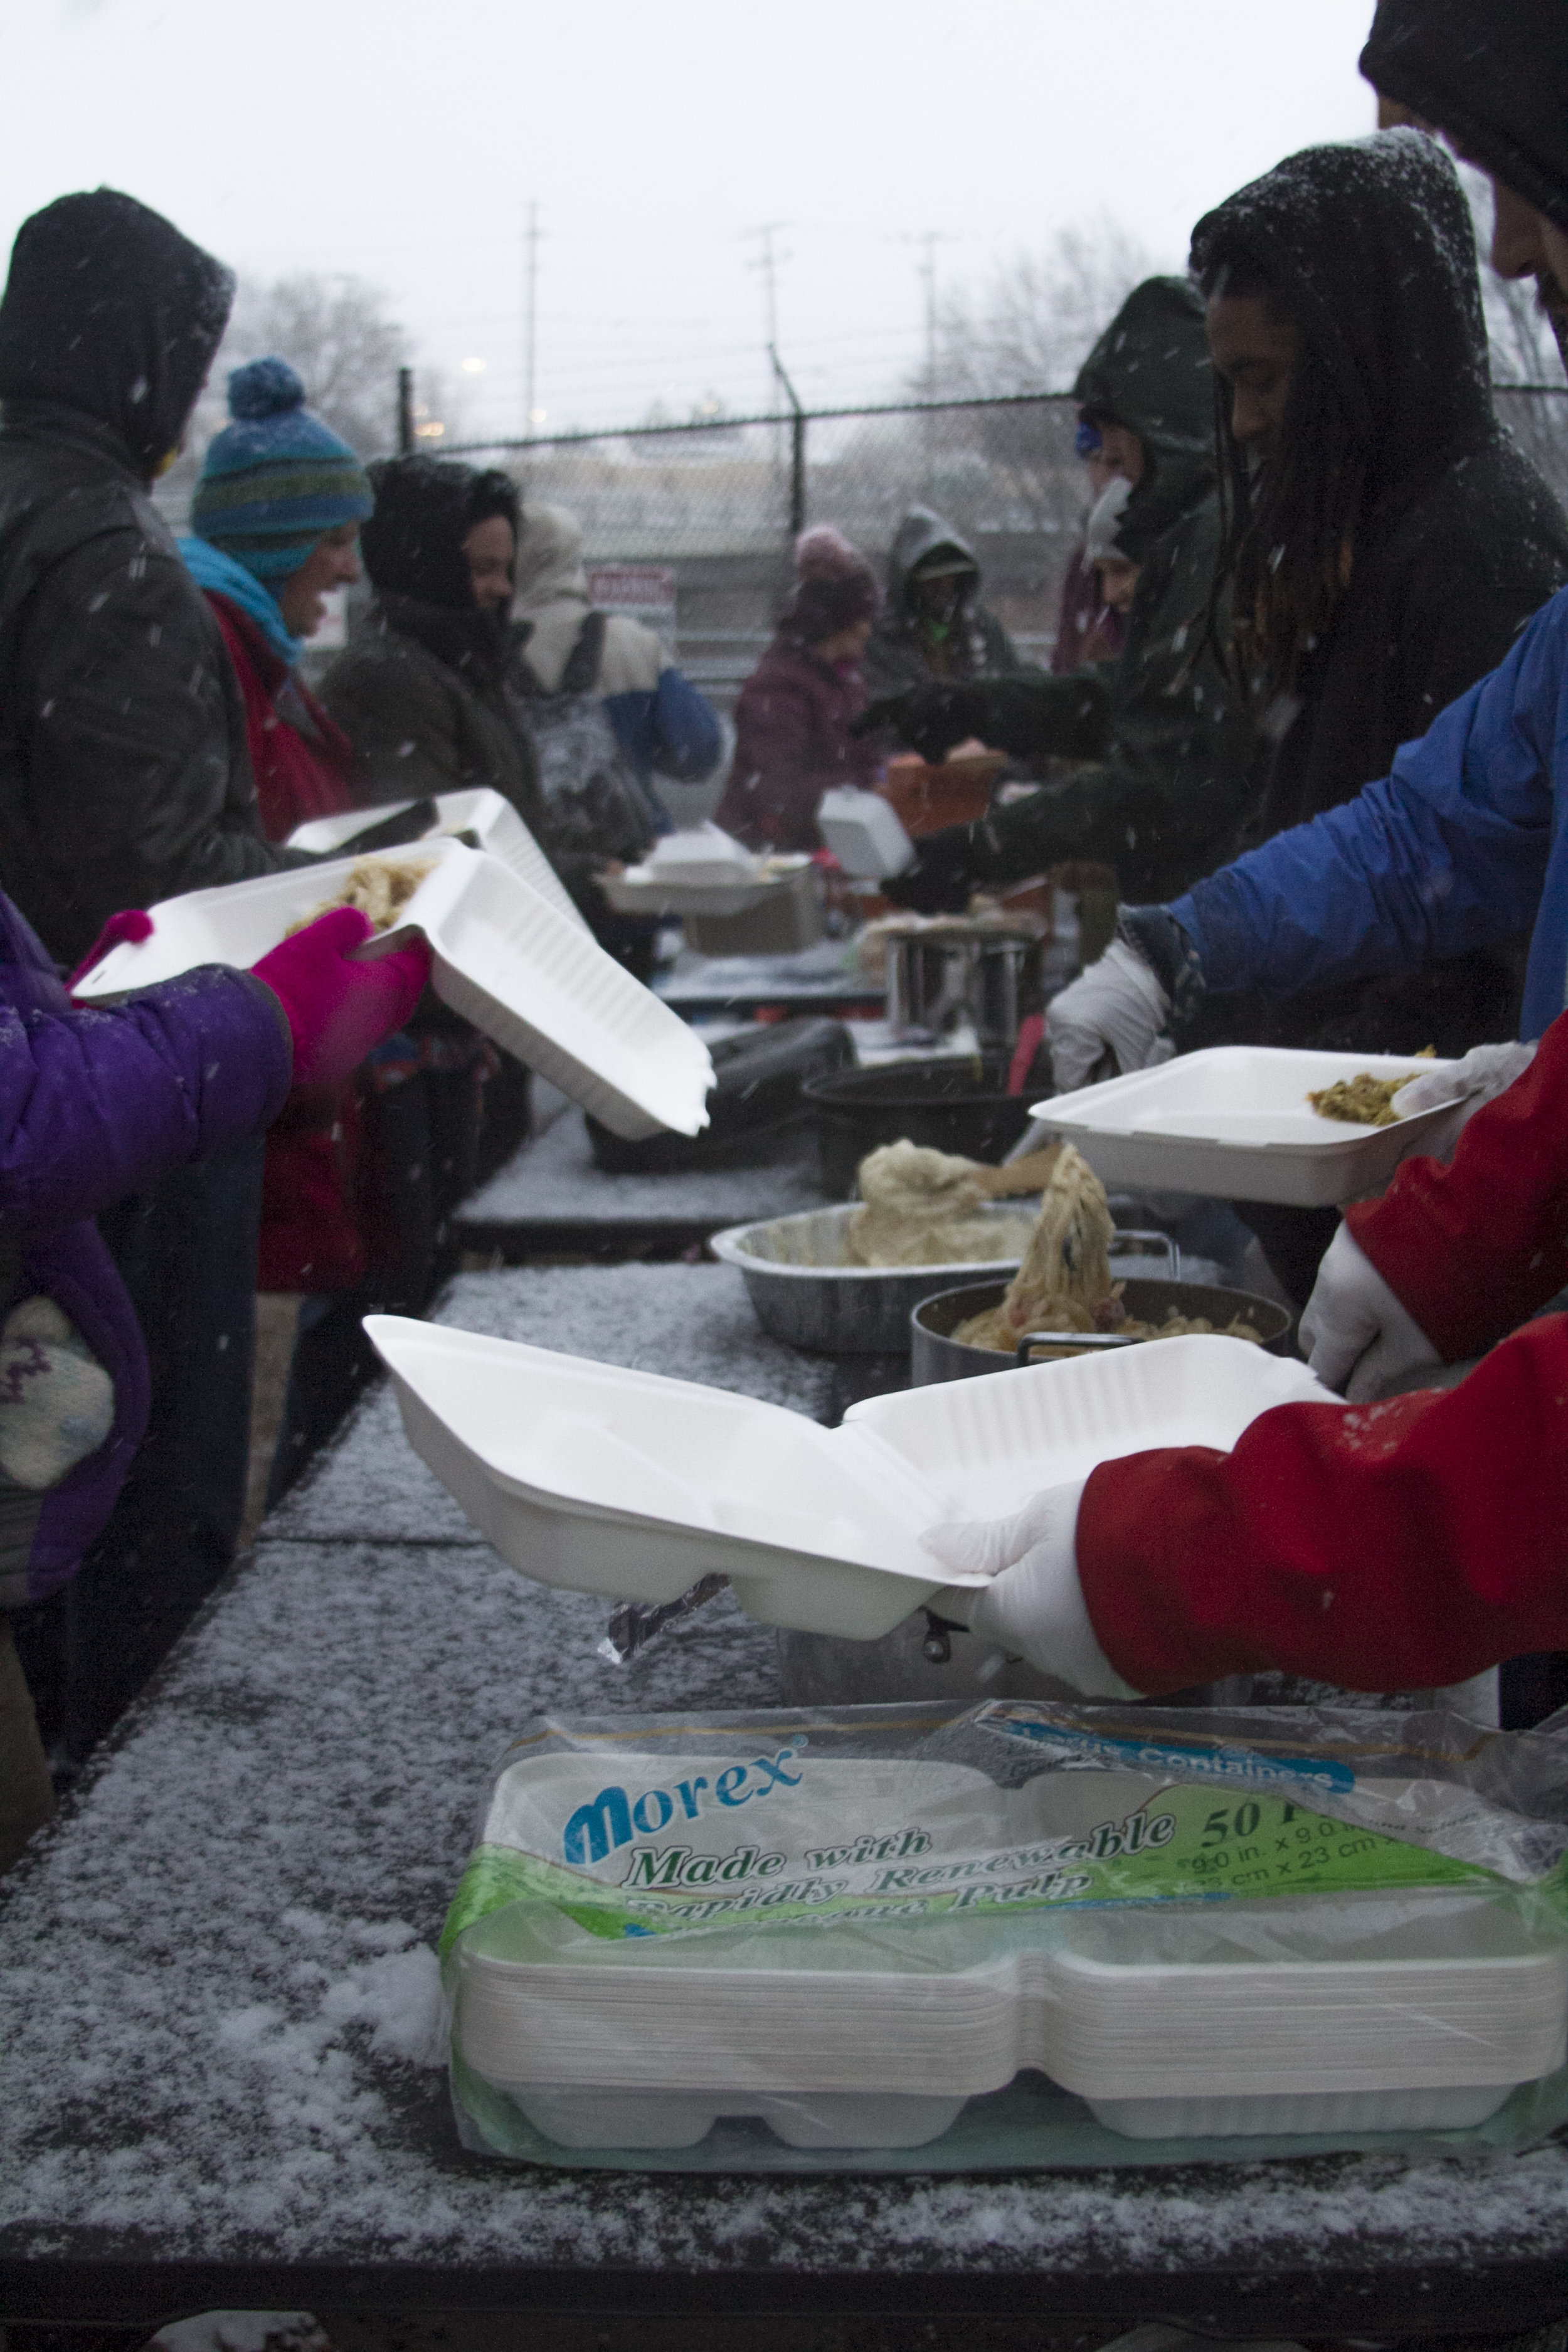 For over an hour people in need wrapped in coats shuffle through the line to fill their stomachs before they retreat beneath a nearby bridge to try and sleep through the cold night. Photo and Reporting by Jordan Gearey for Our Town Reno.